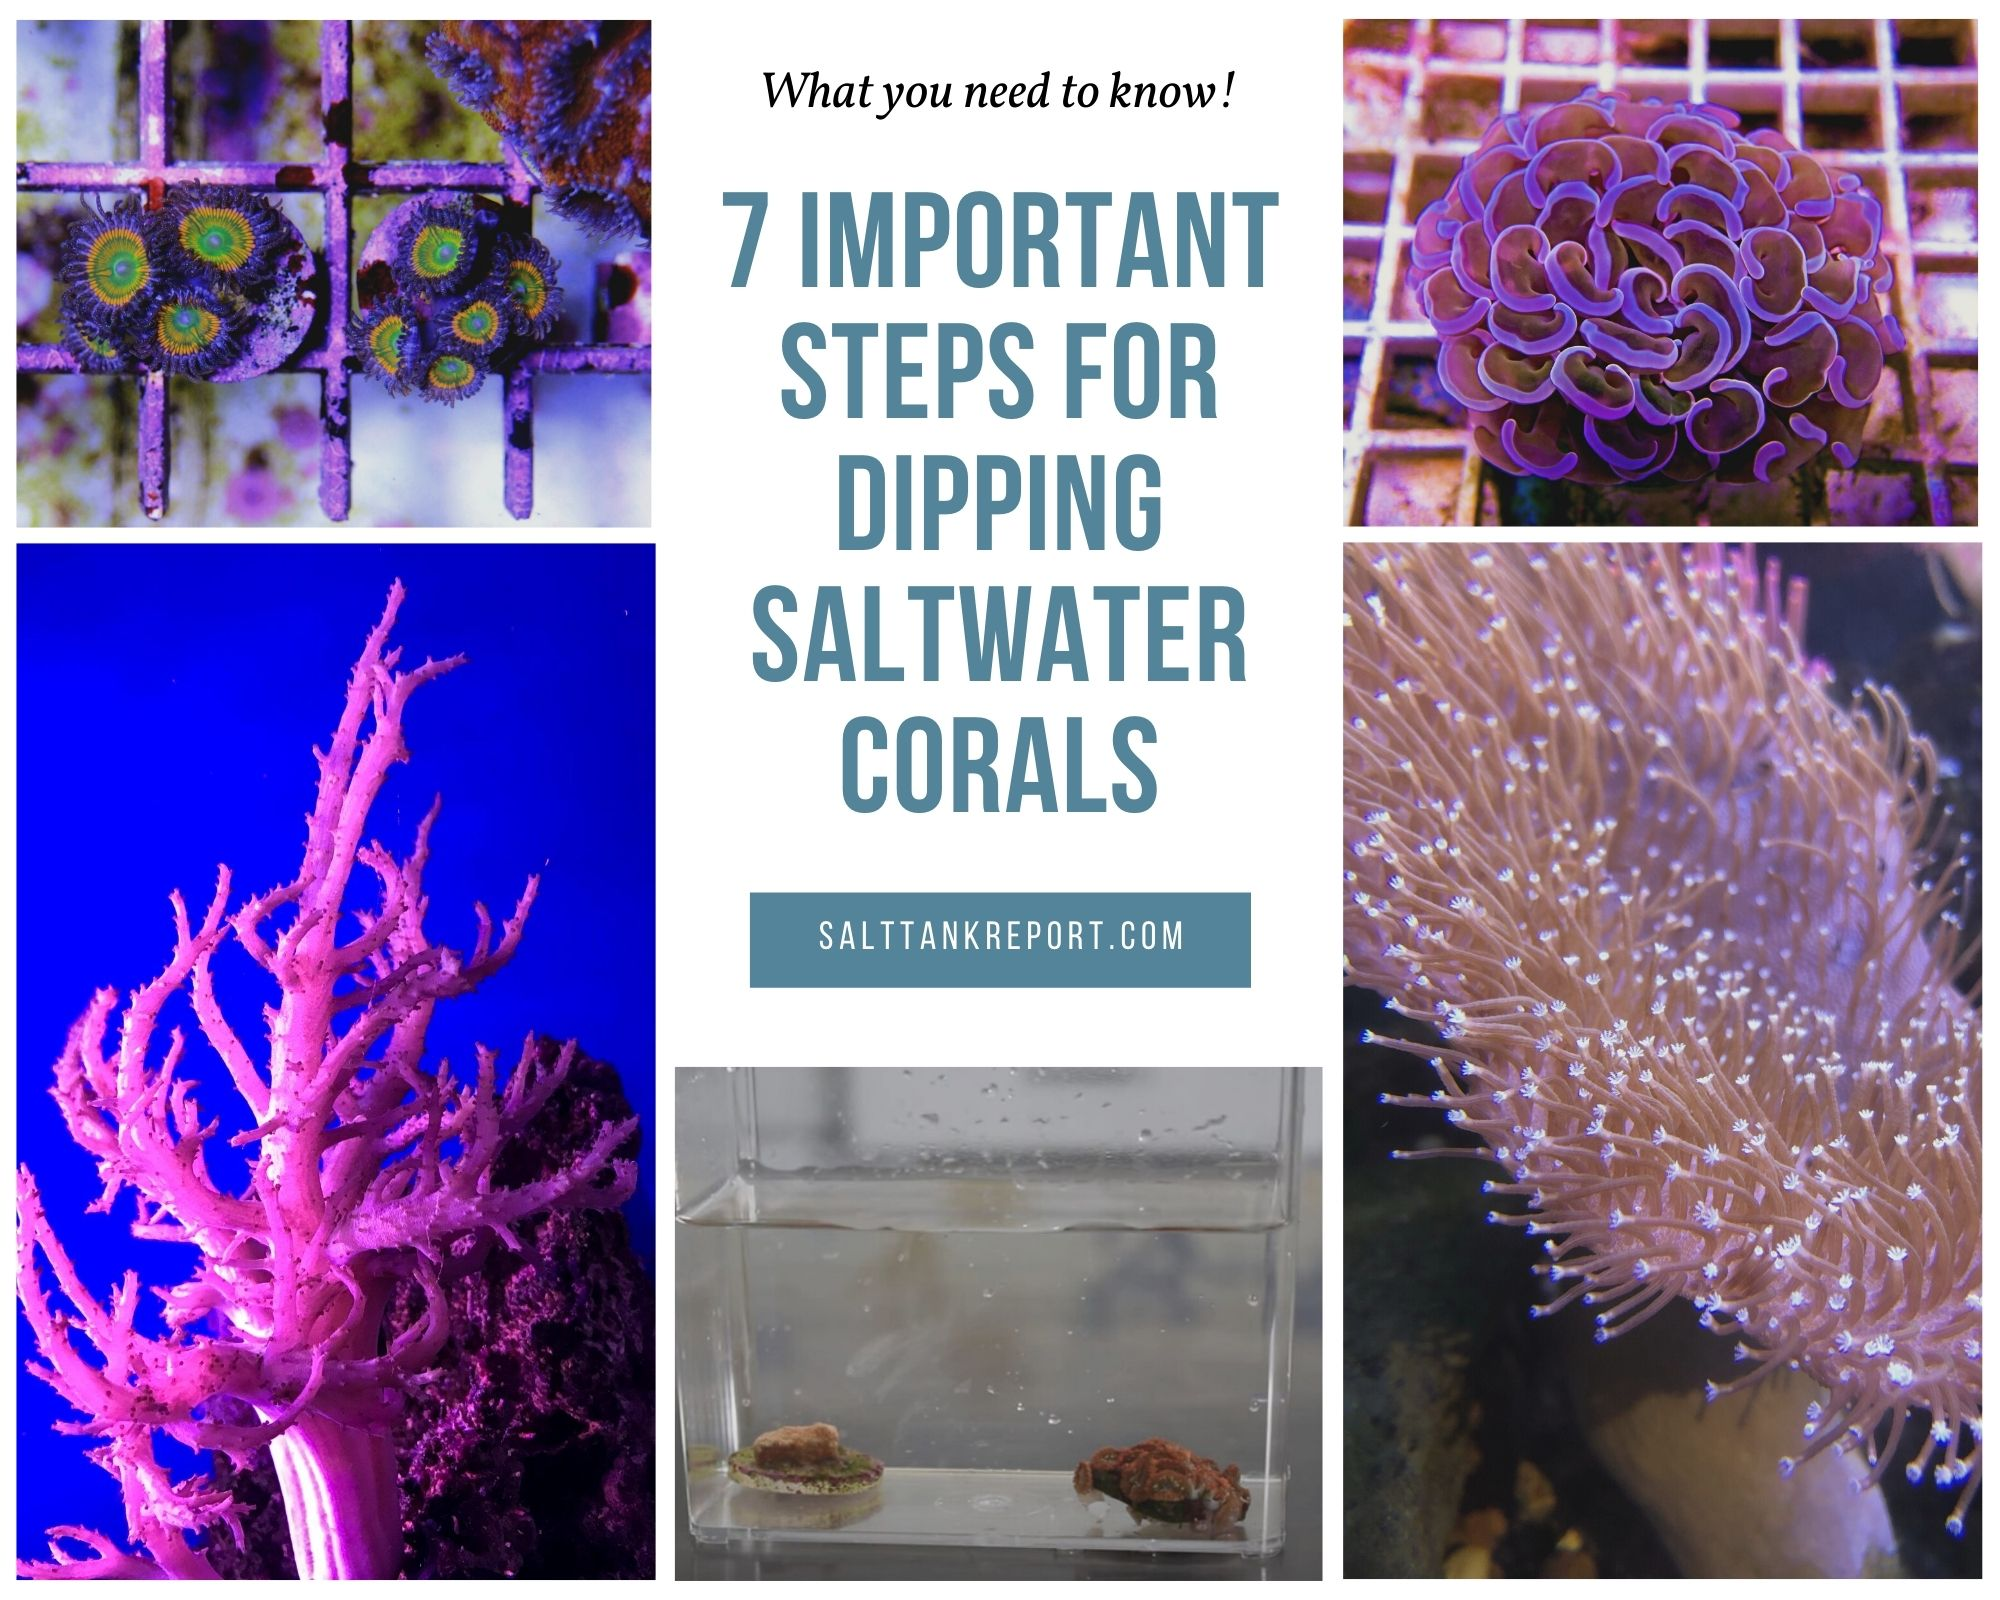 dipping saltwater corals